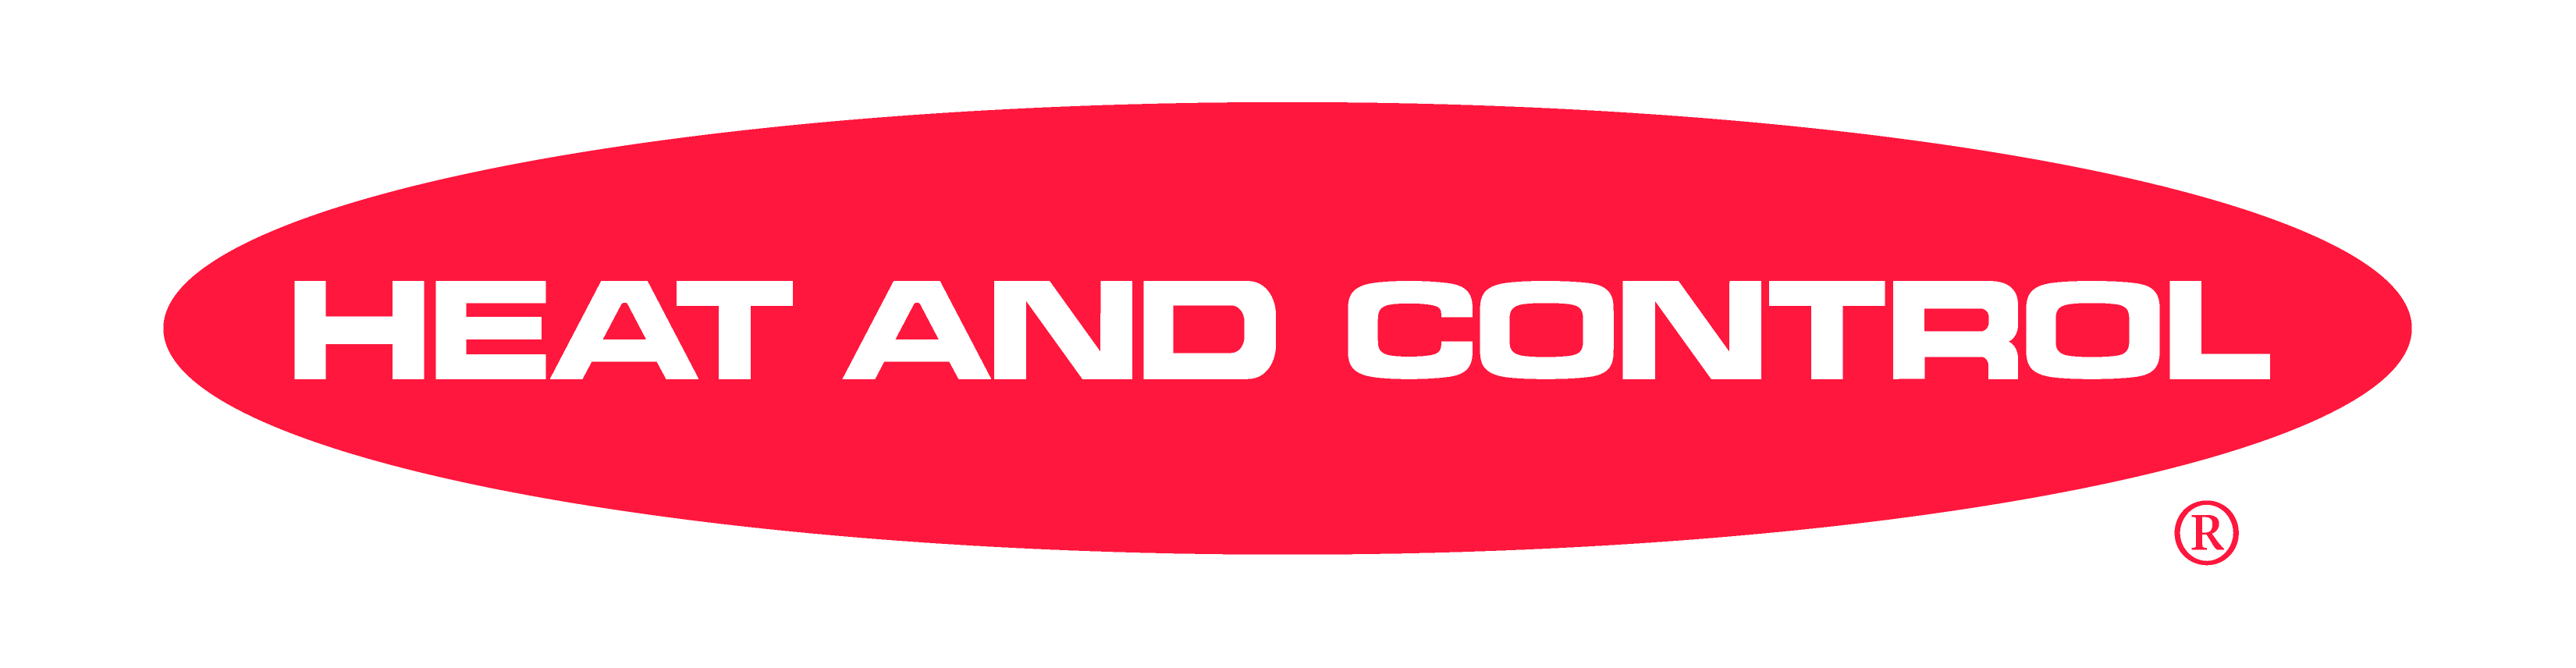 Company Logo Heat and Control